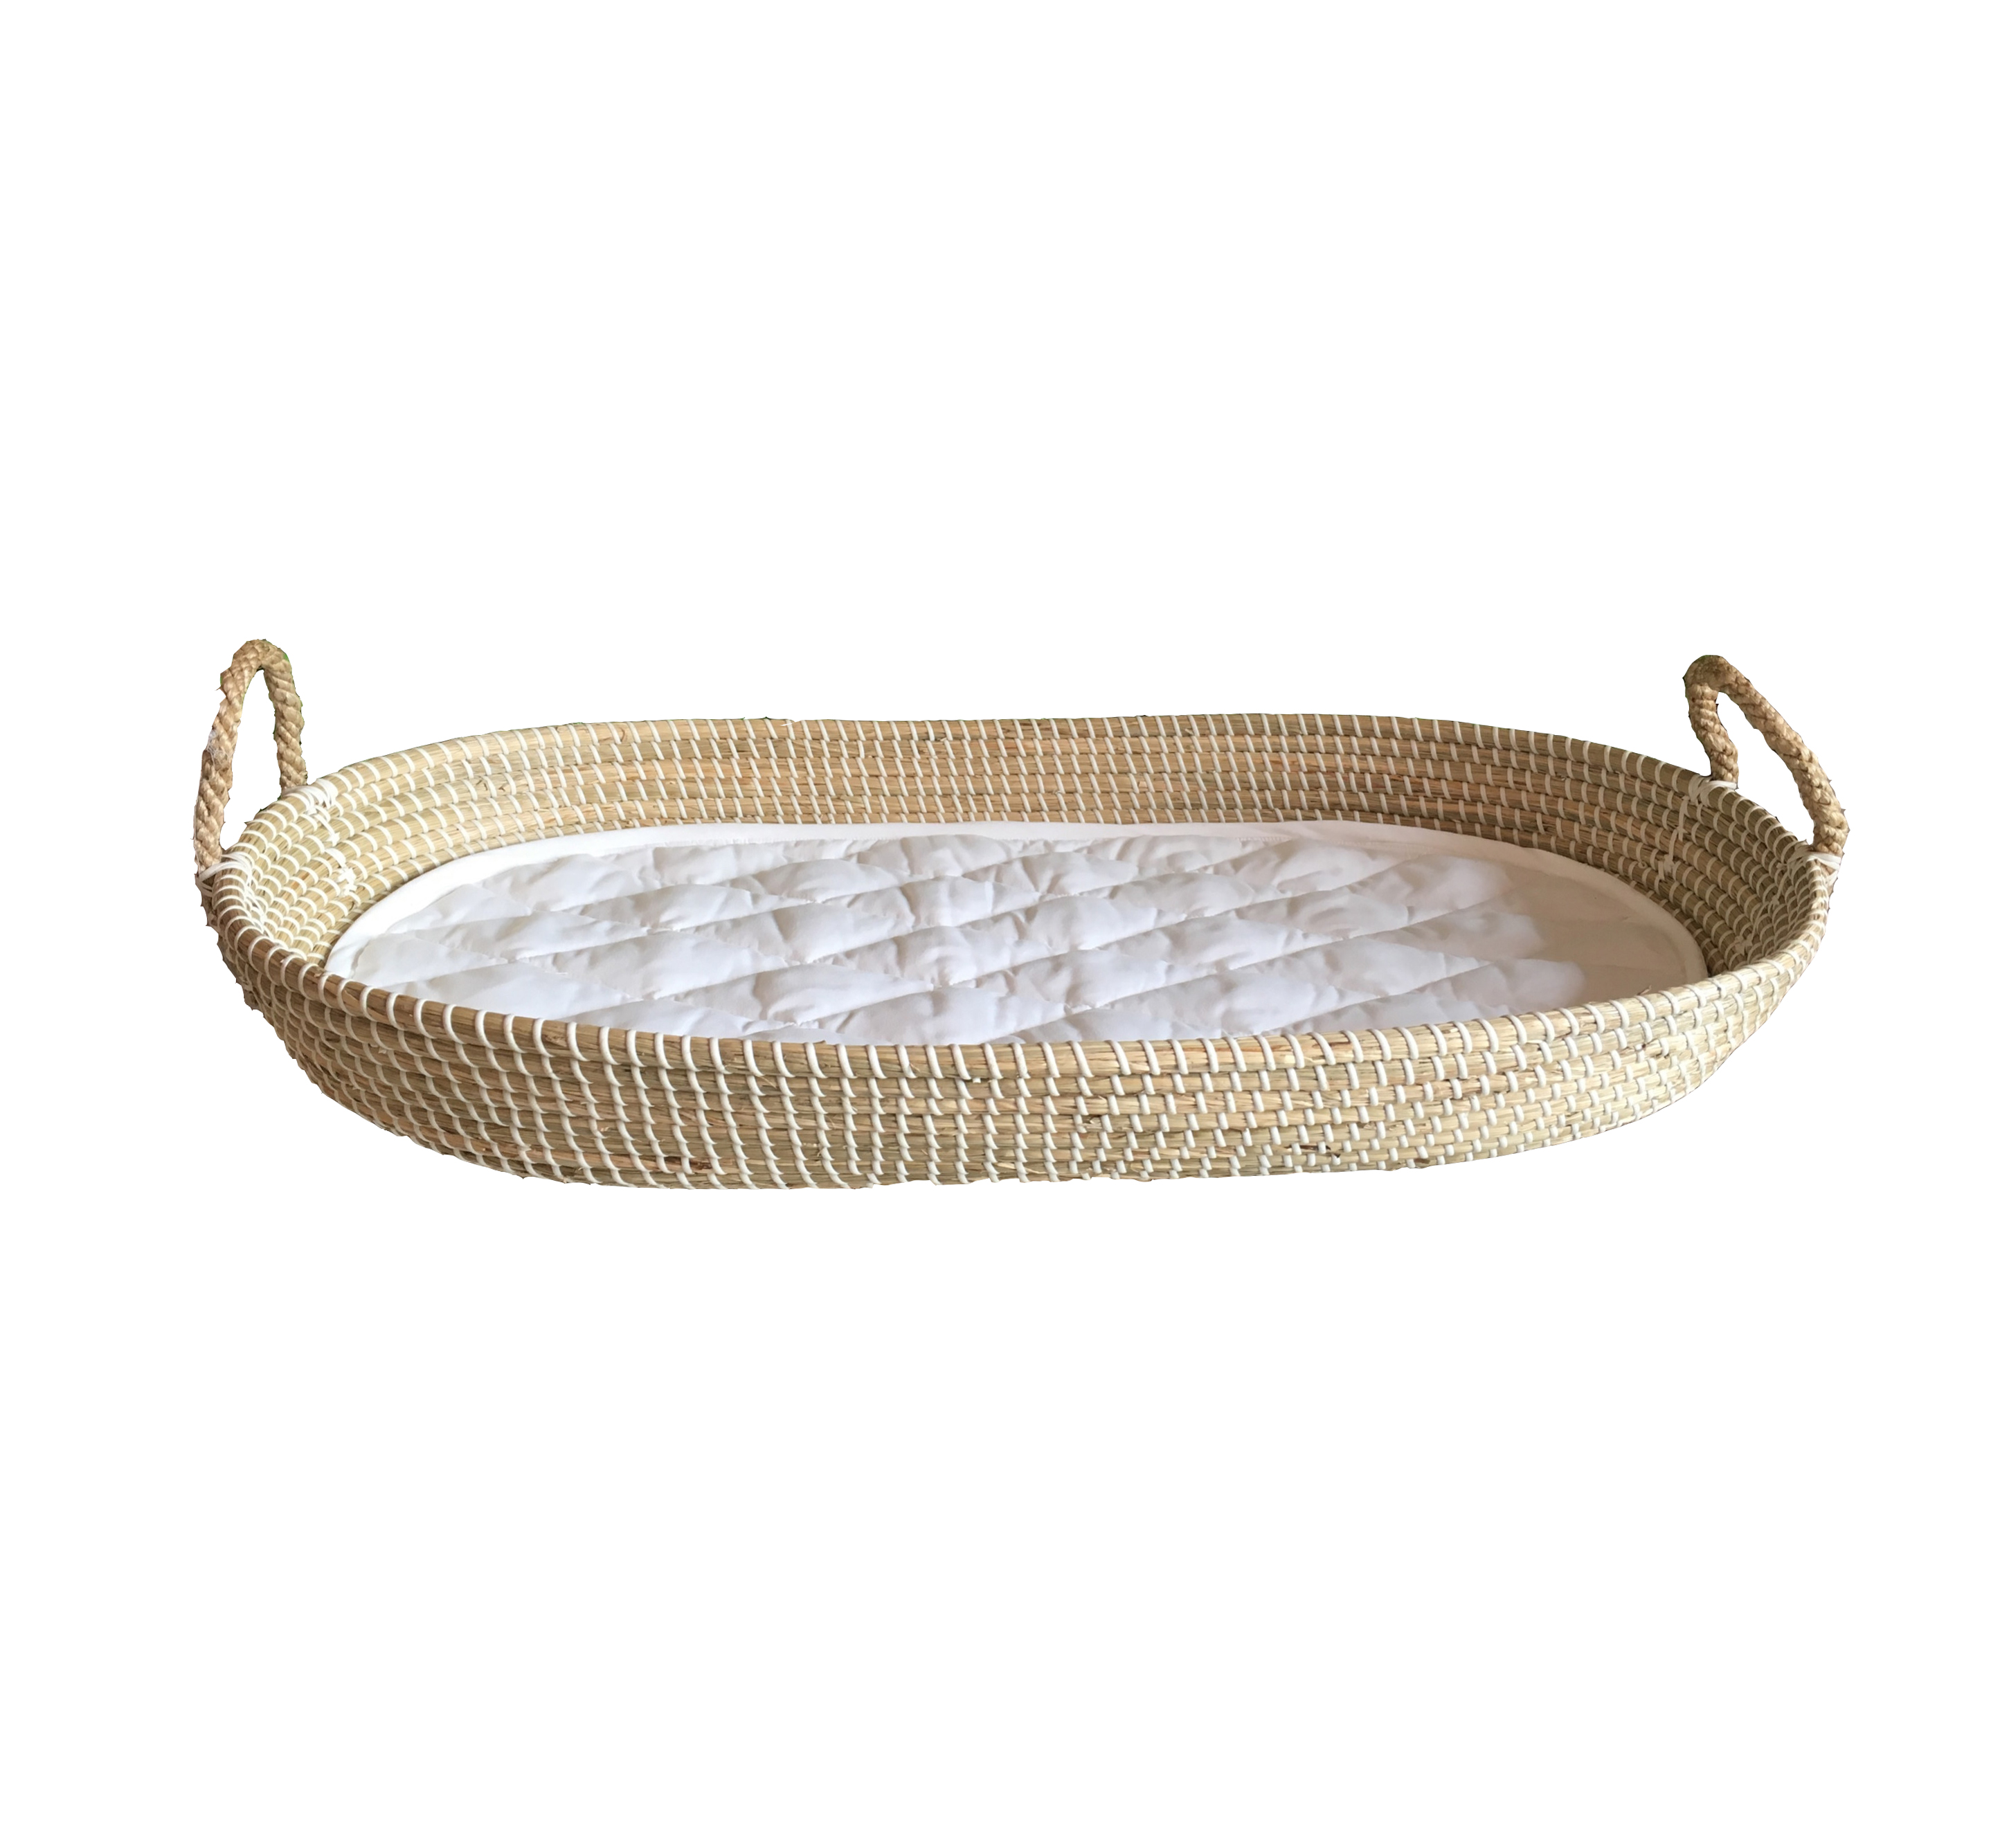 Seagrass change basket Baby change basket